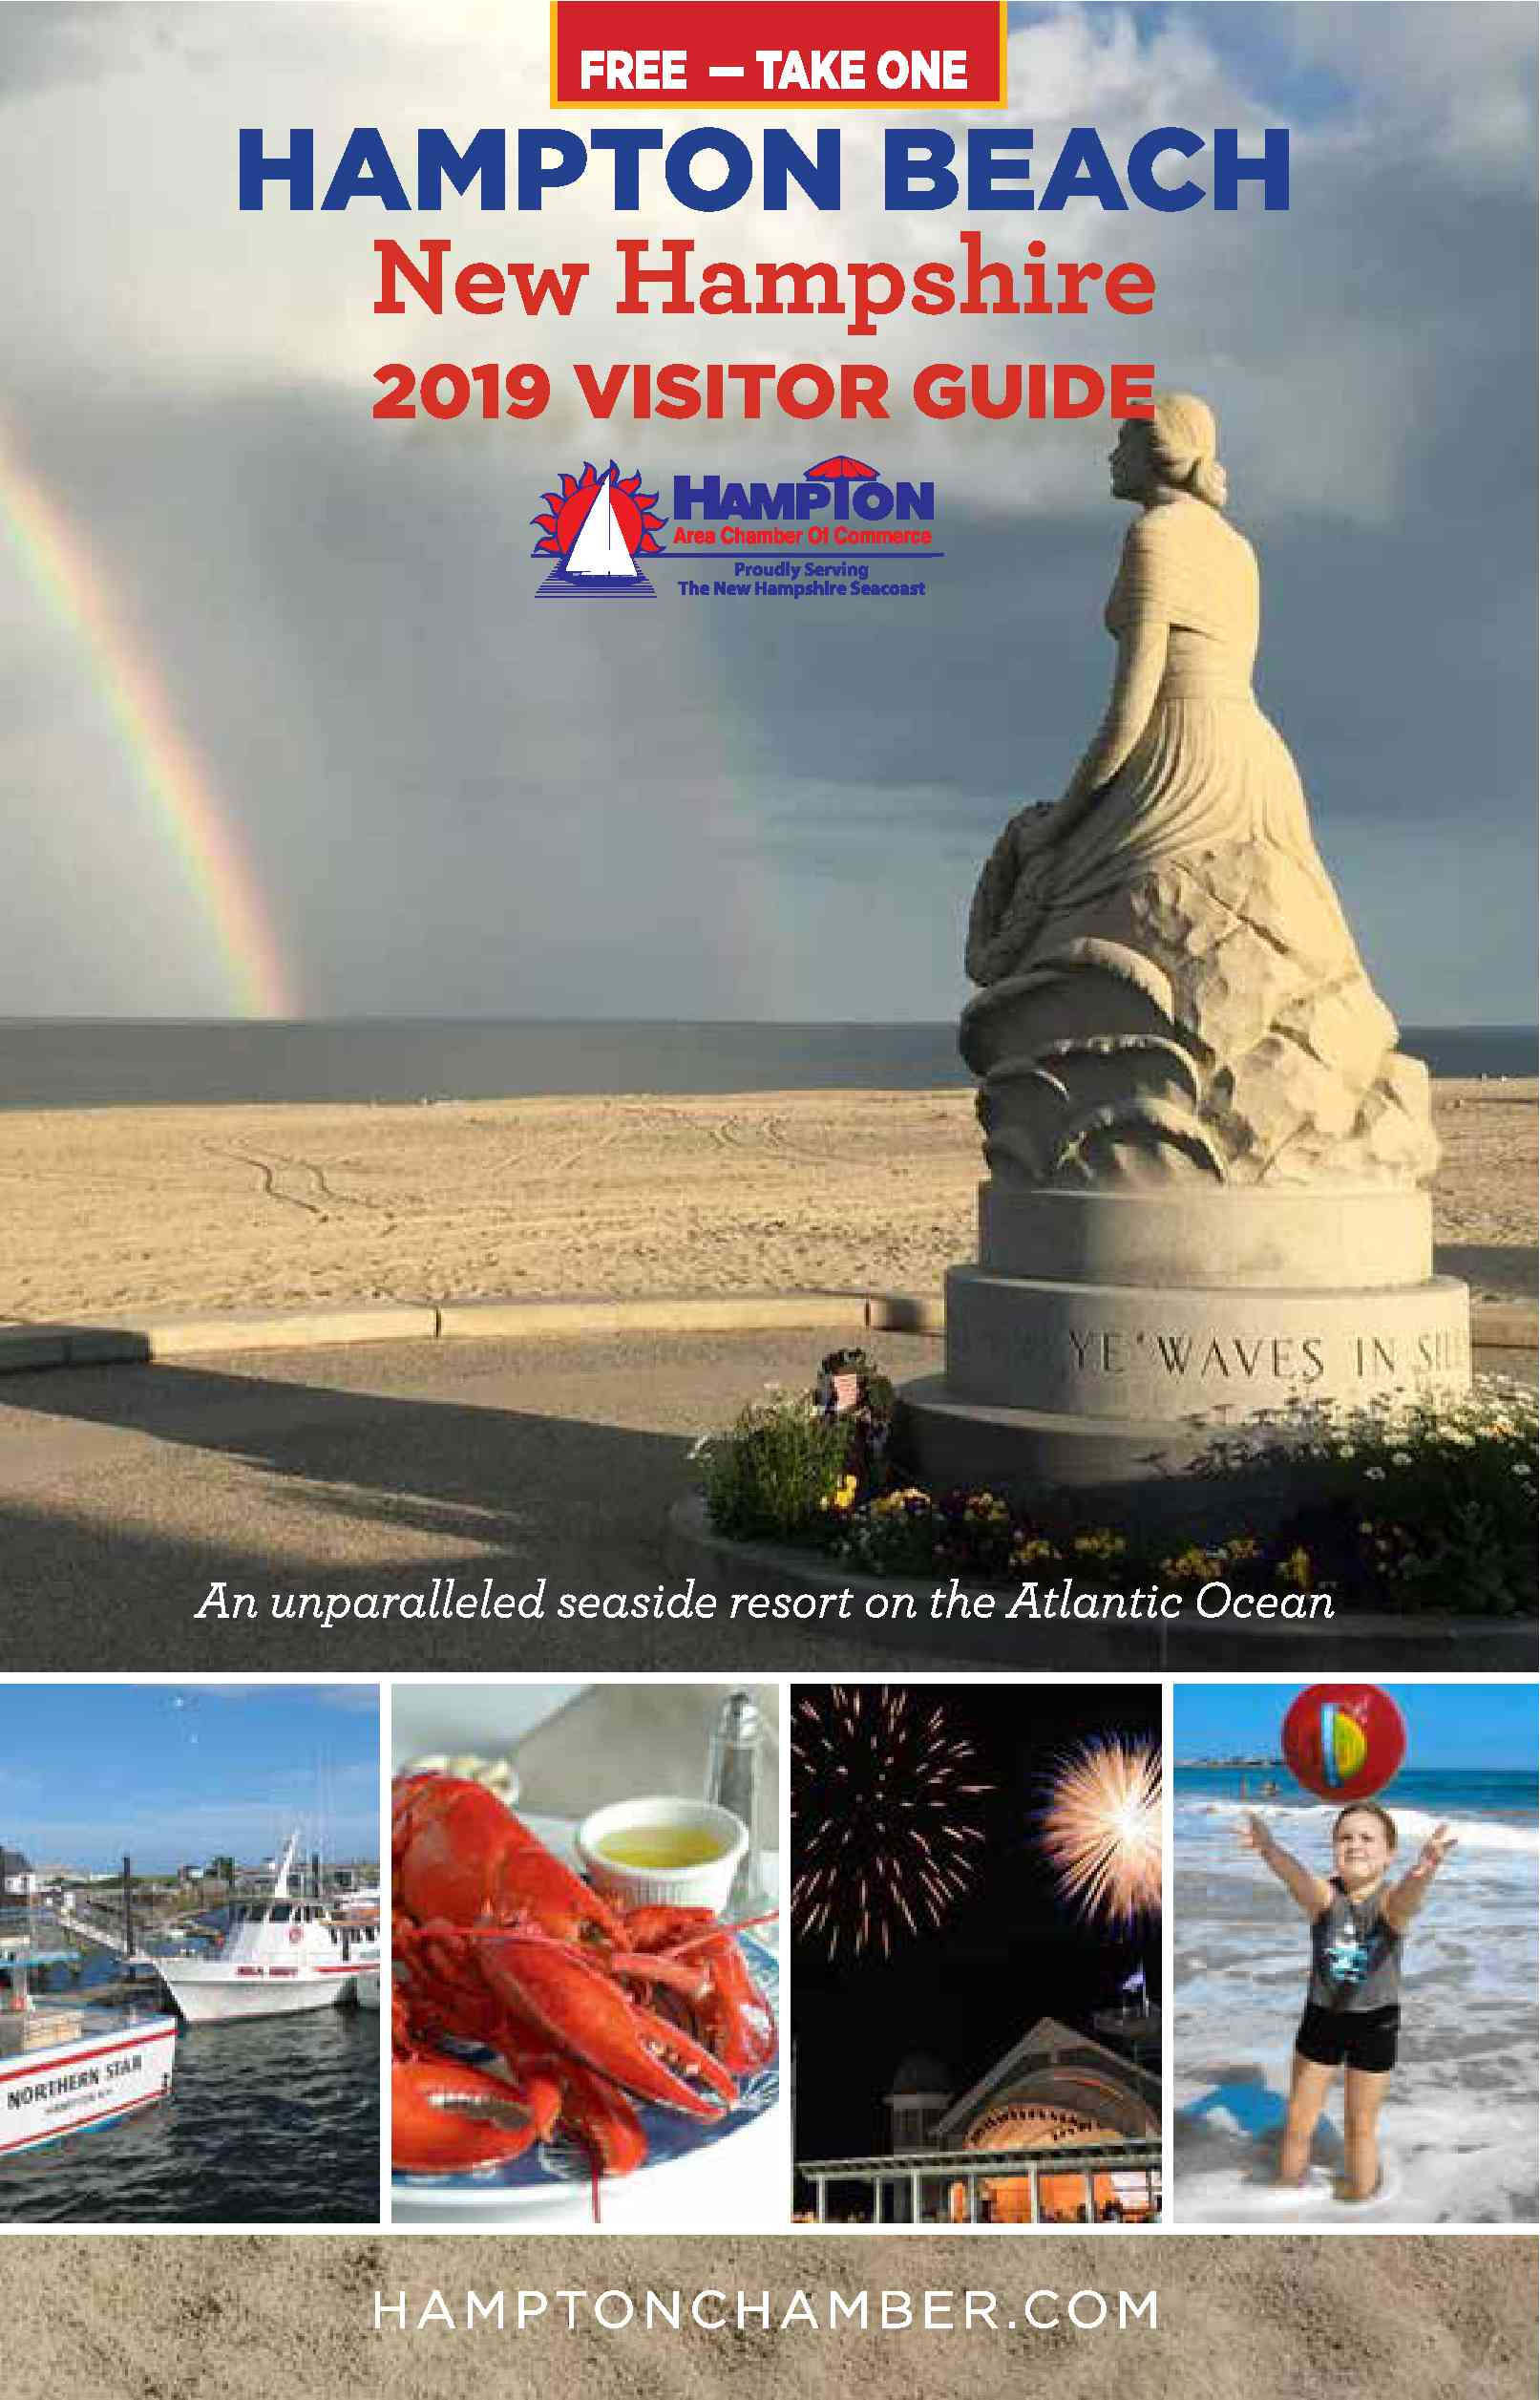 Cover of the 2019 Visitor Guide